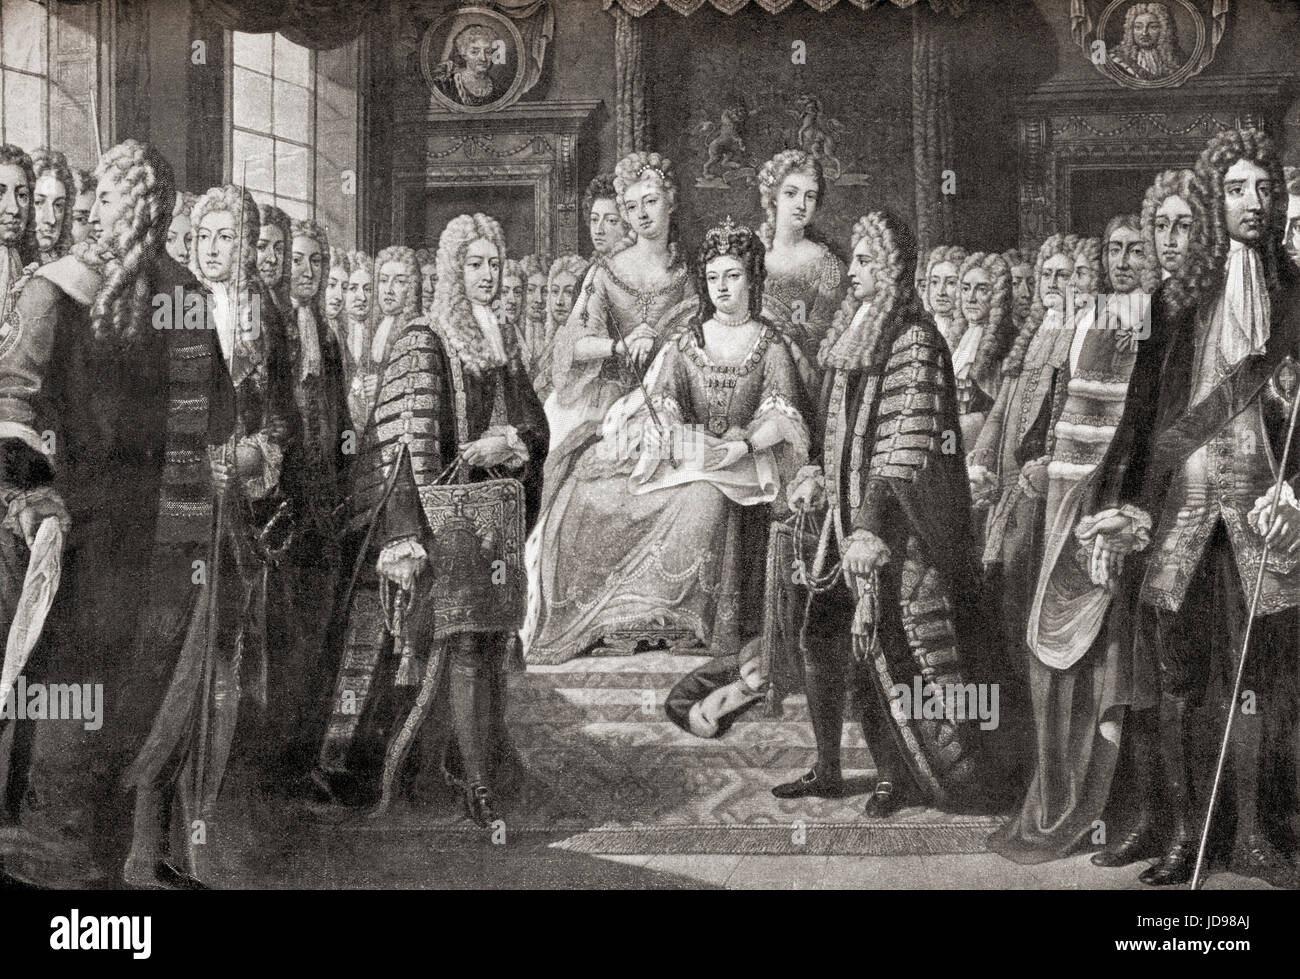 The articles of the Acts of Union between England and Scotland, which came into effect on 1 May 1707 and created the single, united kingdom of Great Britain, presented by the Commissioners to Queen Anne, 1706. Anne, 1665 – 1714.  Queen of England, Scotland and Ireland.   From Hutchinson's History of the Nations, published 1915. Stock Photo